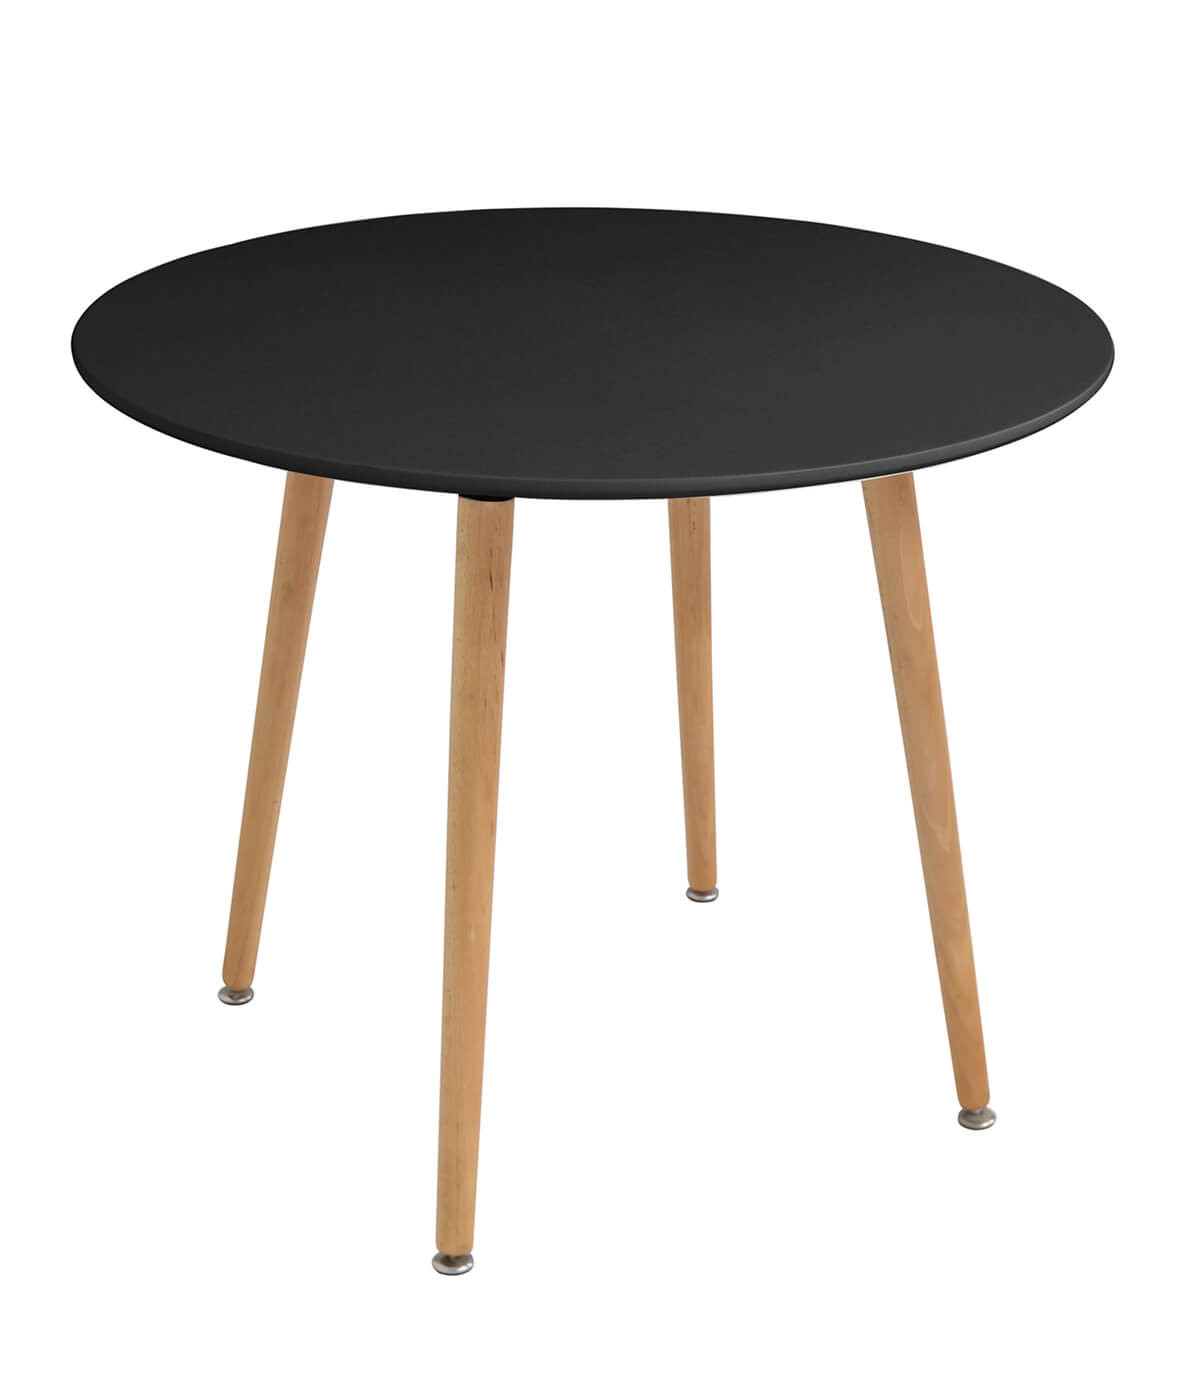 Naples Black Wooden Dining Table Cm Manchester